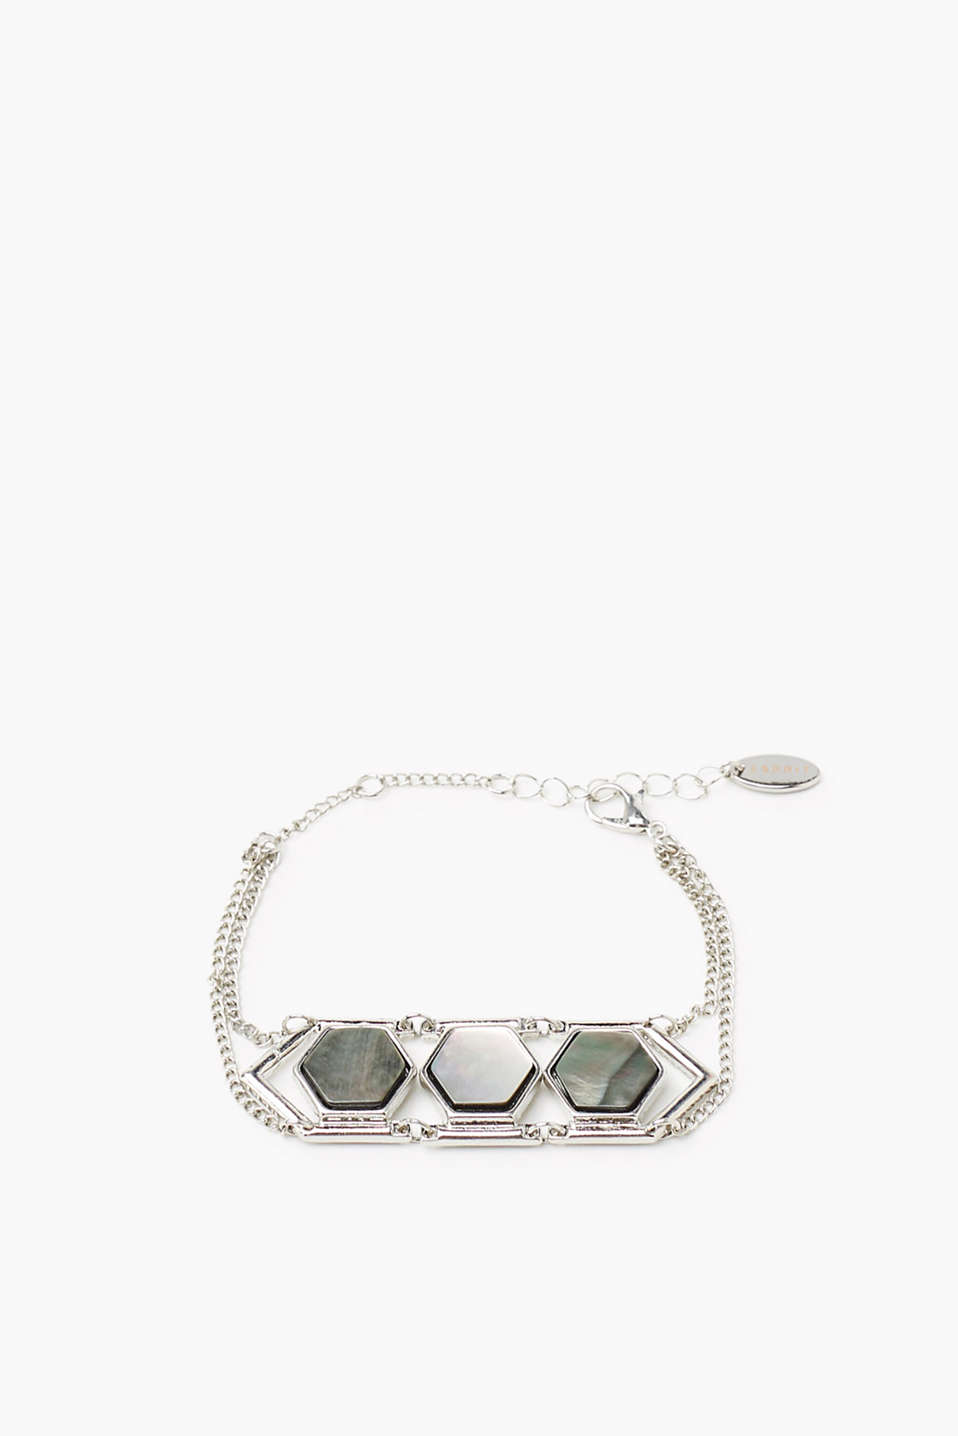 Bracelet made of a high-quality metal alloy in two widths